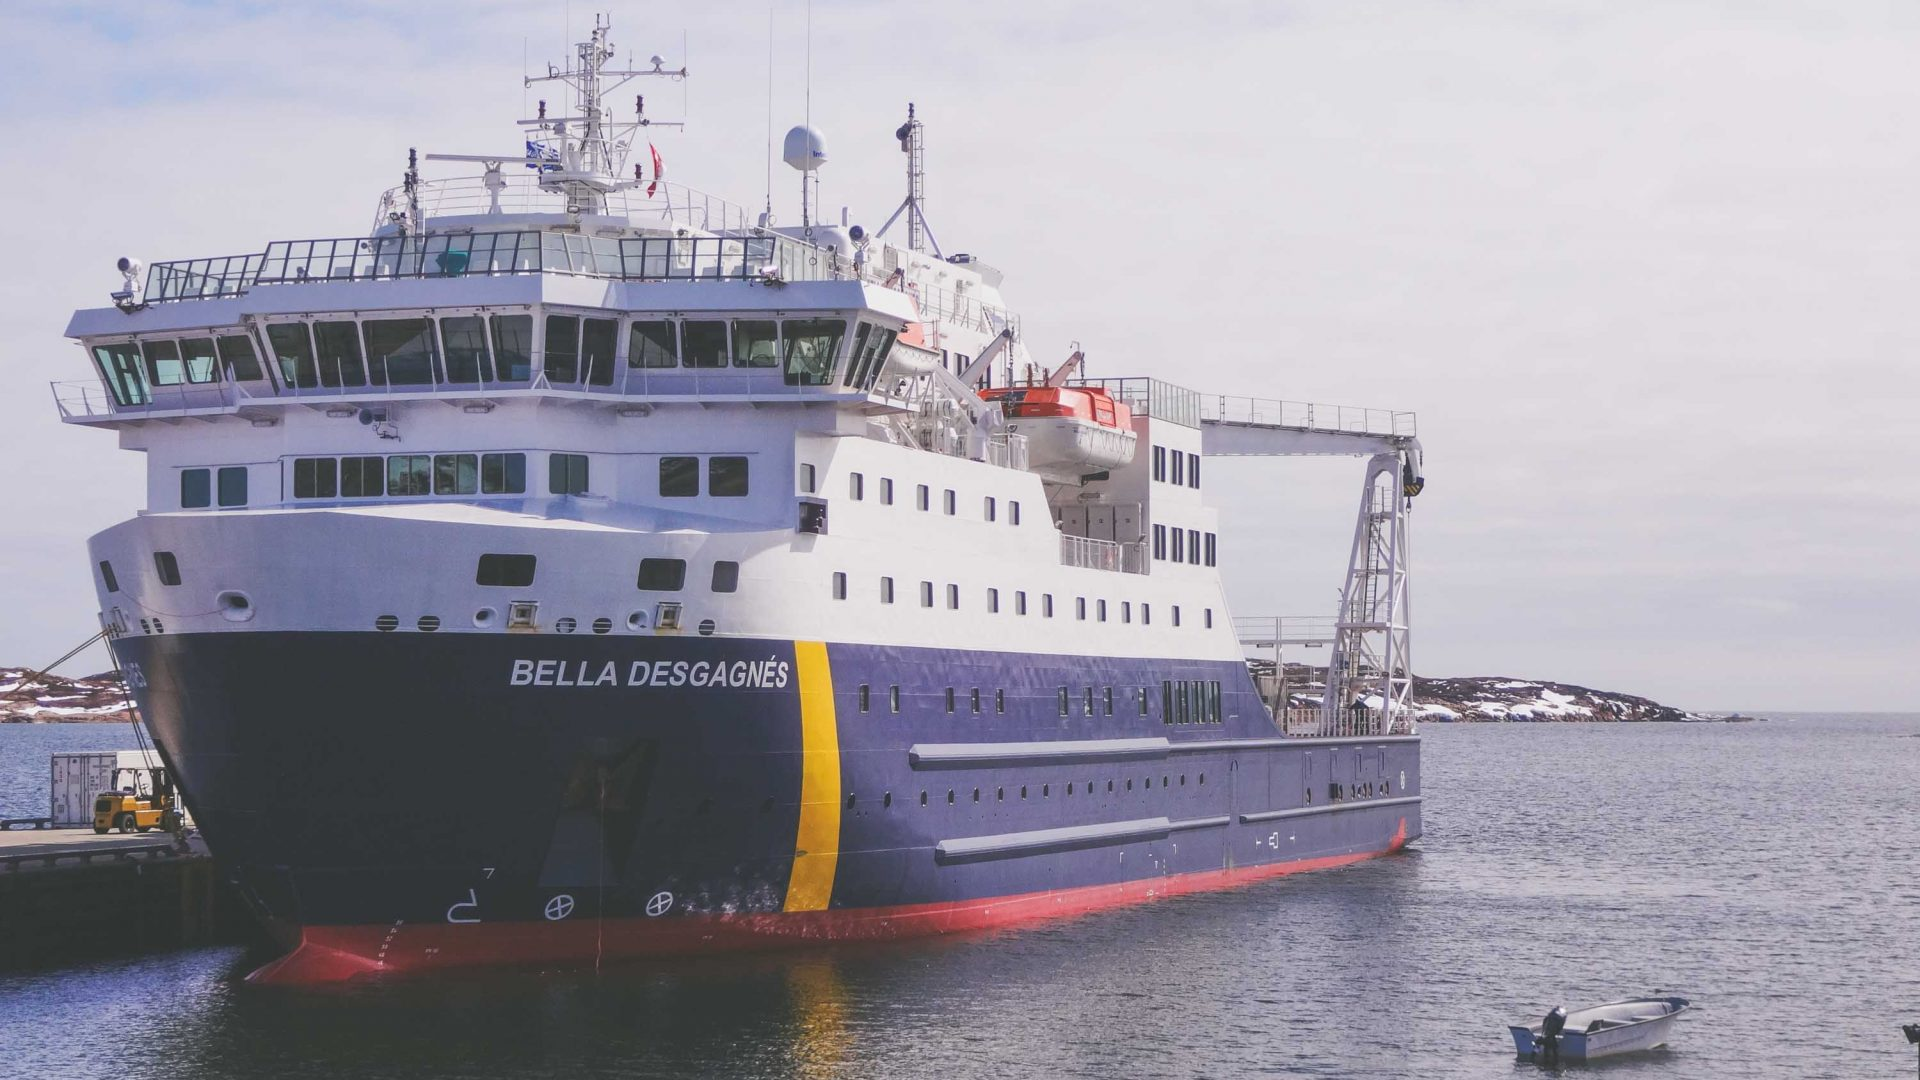 The cargo/passenger ship MV Bella Desgagnes.